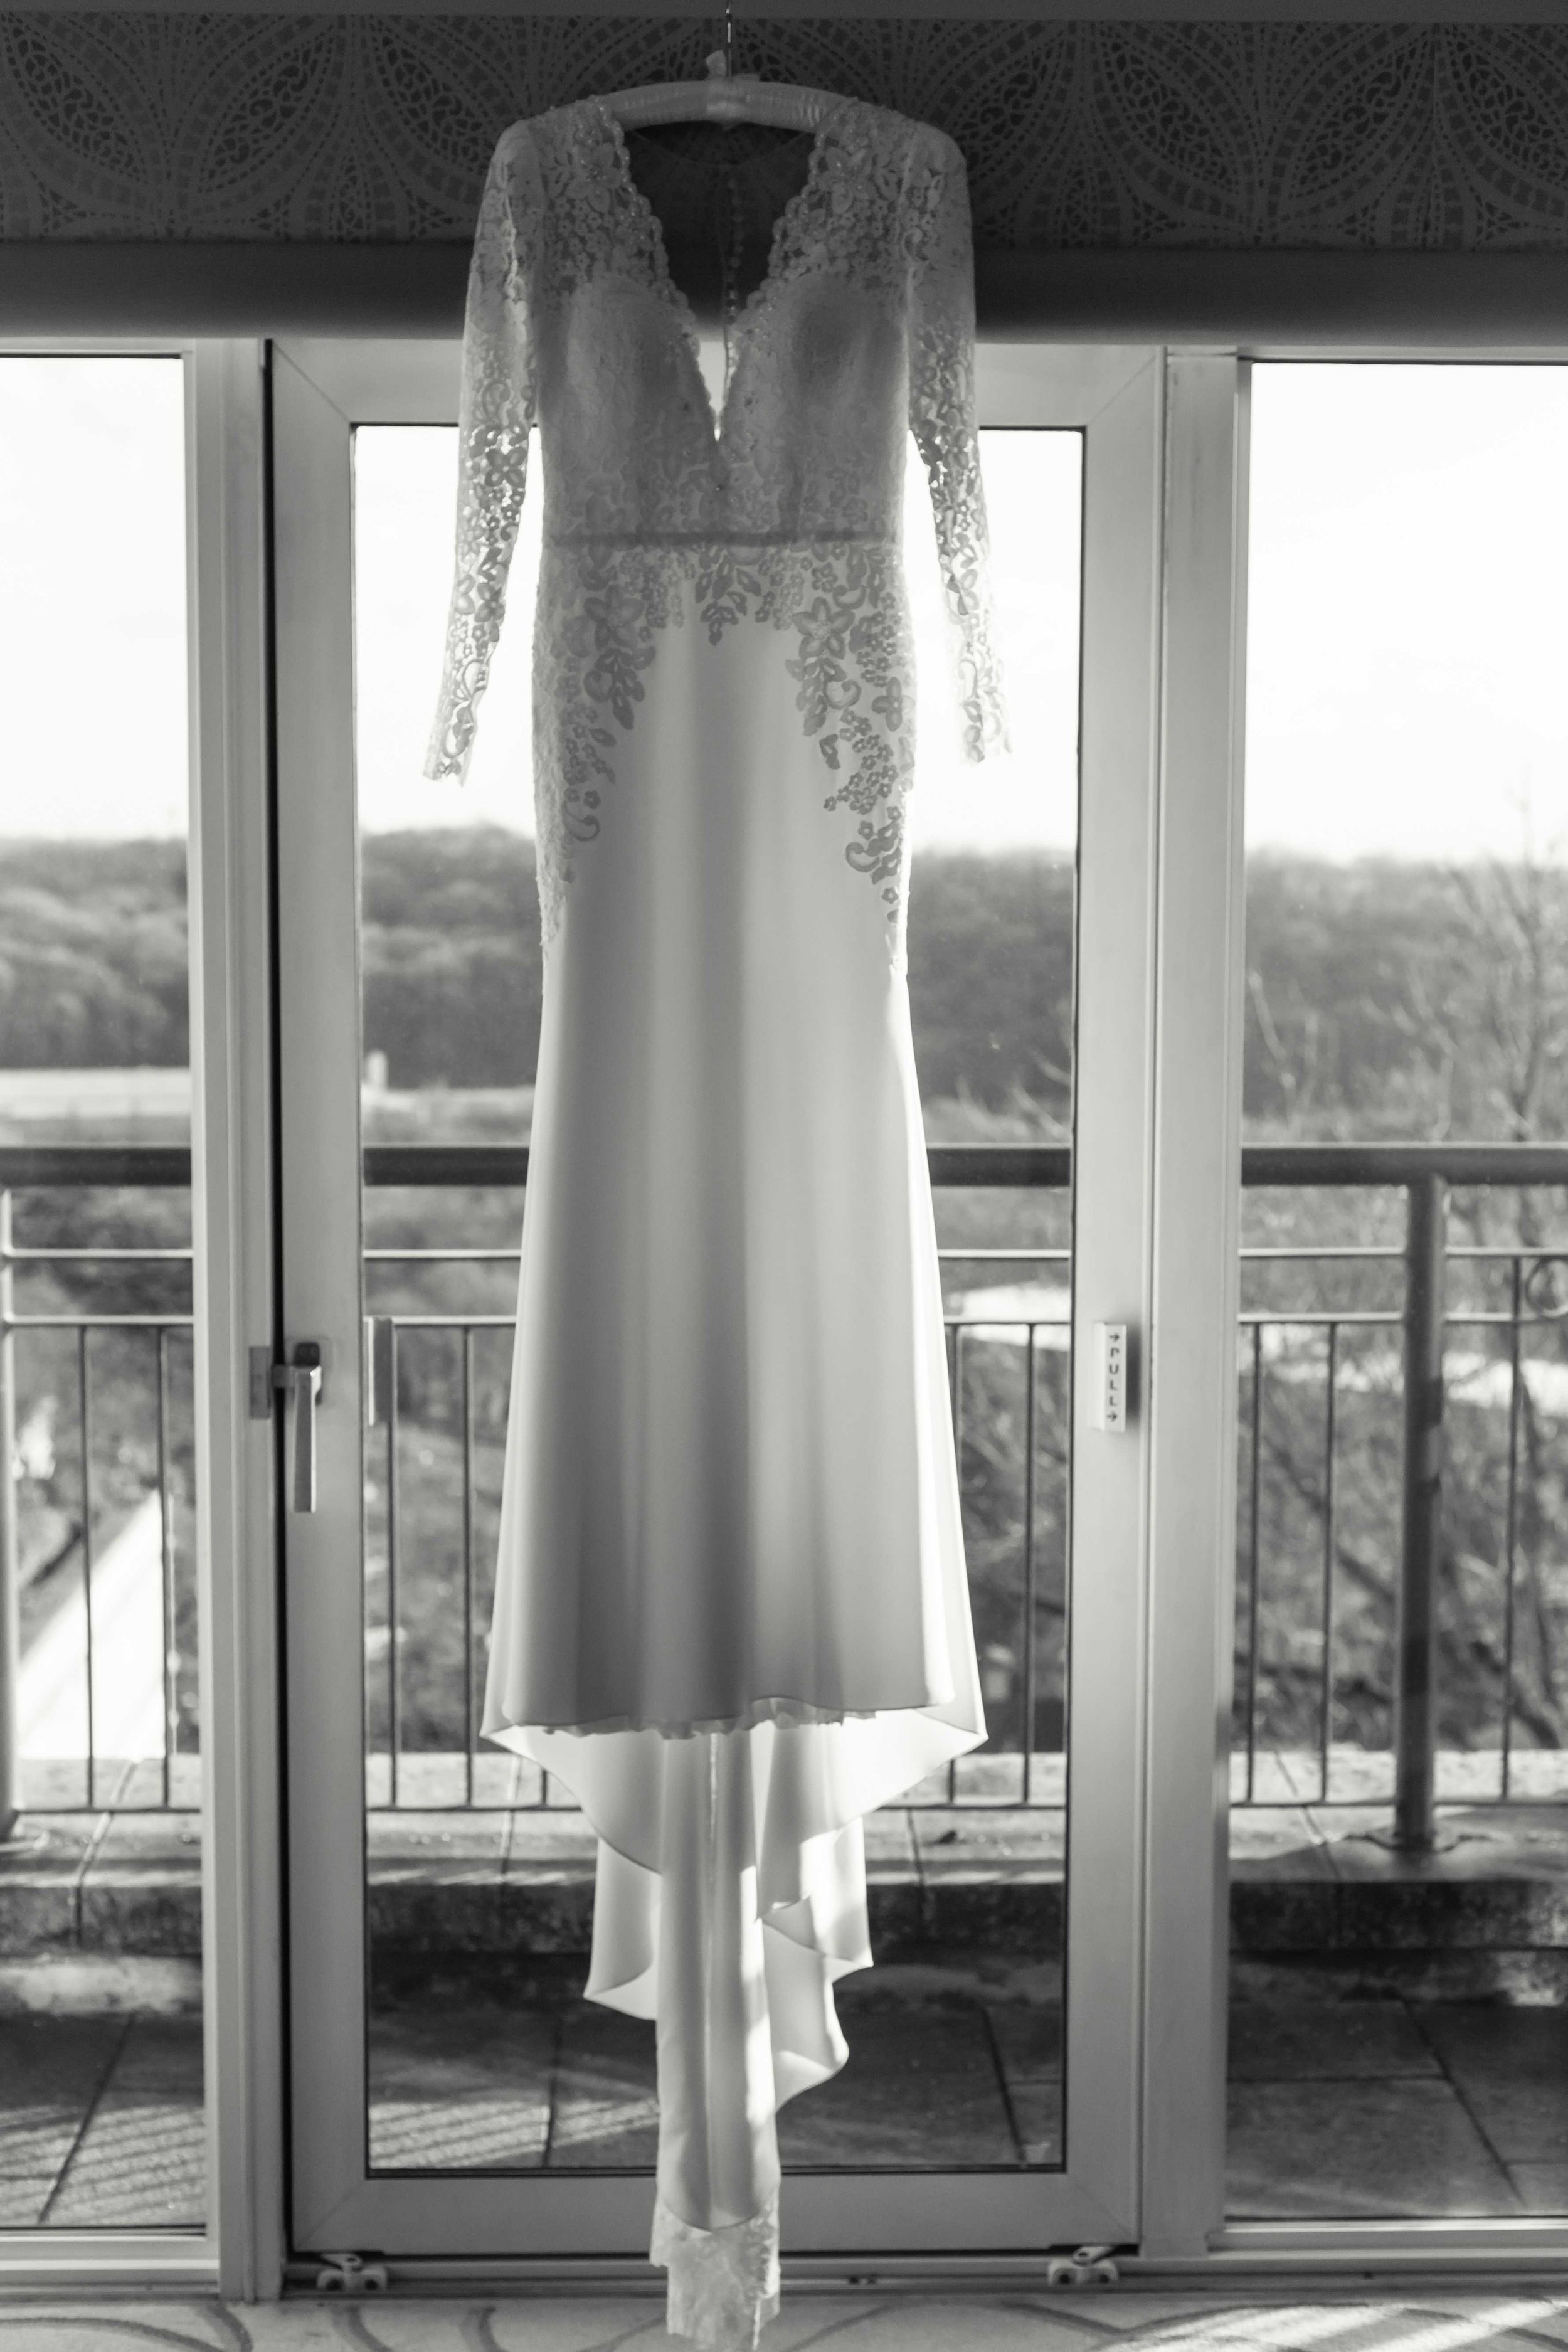 Black and white photograph of brides wedding dress hanging in large window